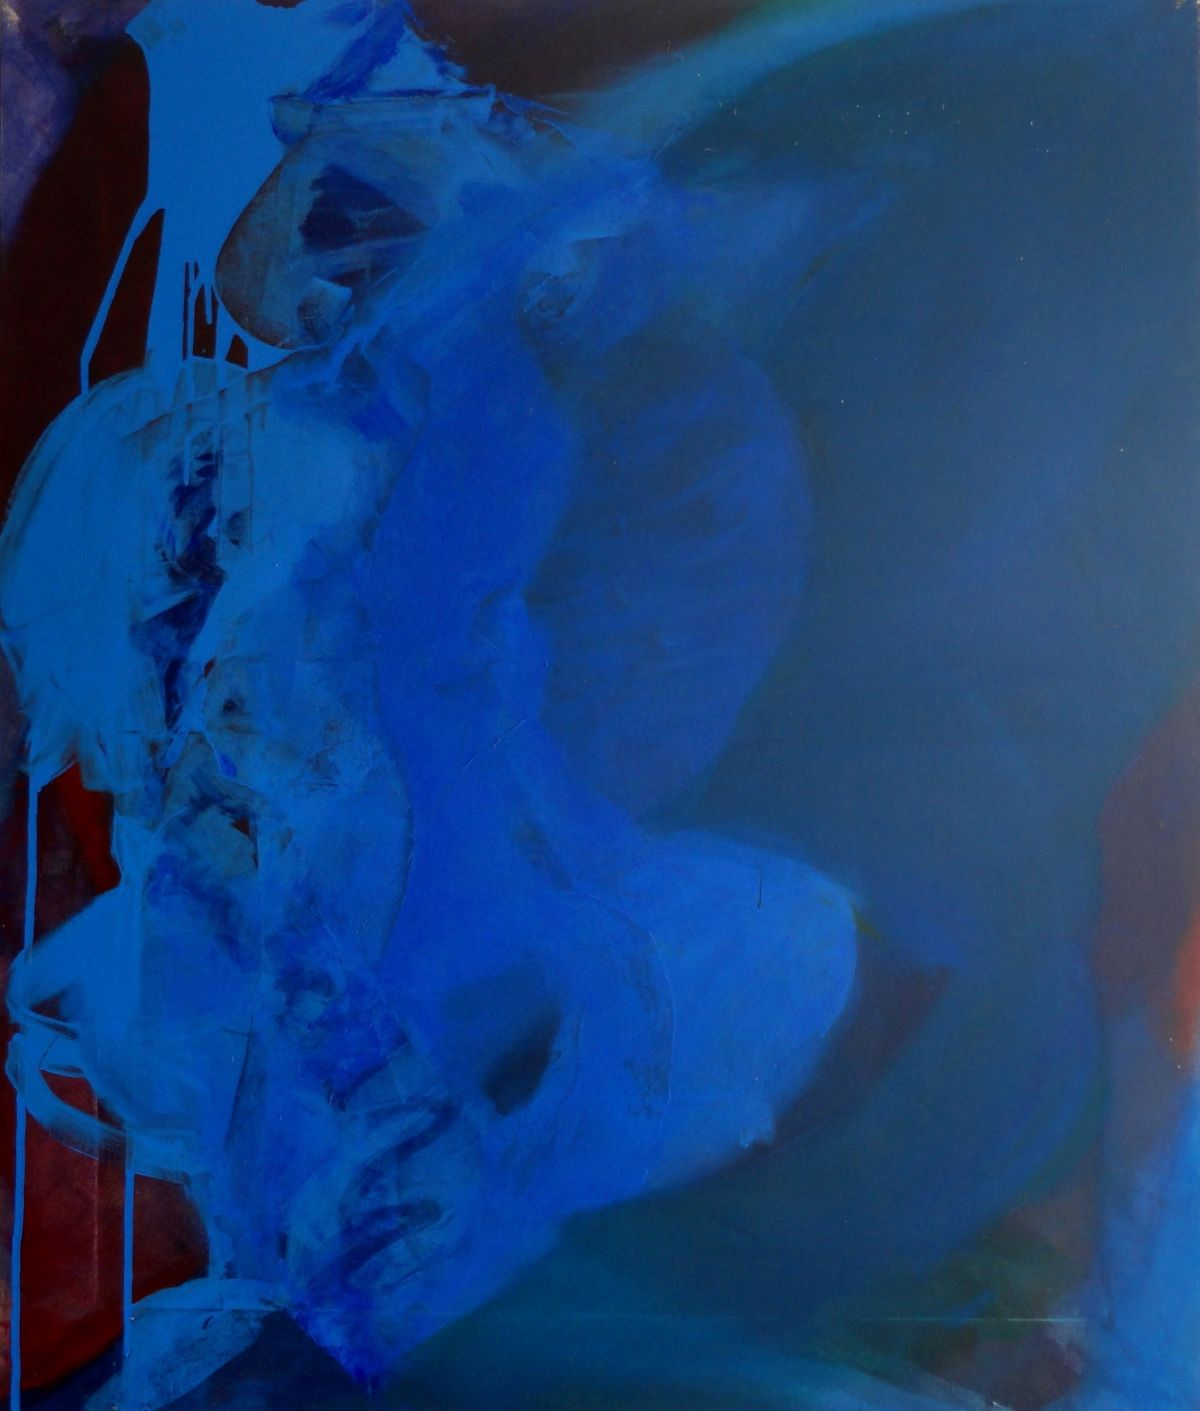 Uros Paternu 1999 Untitled 2 artwork by Uros Paternu - art listed for sale on Artplode